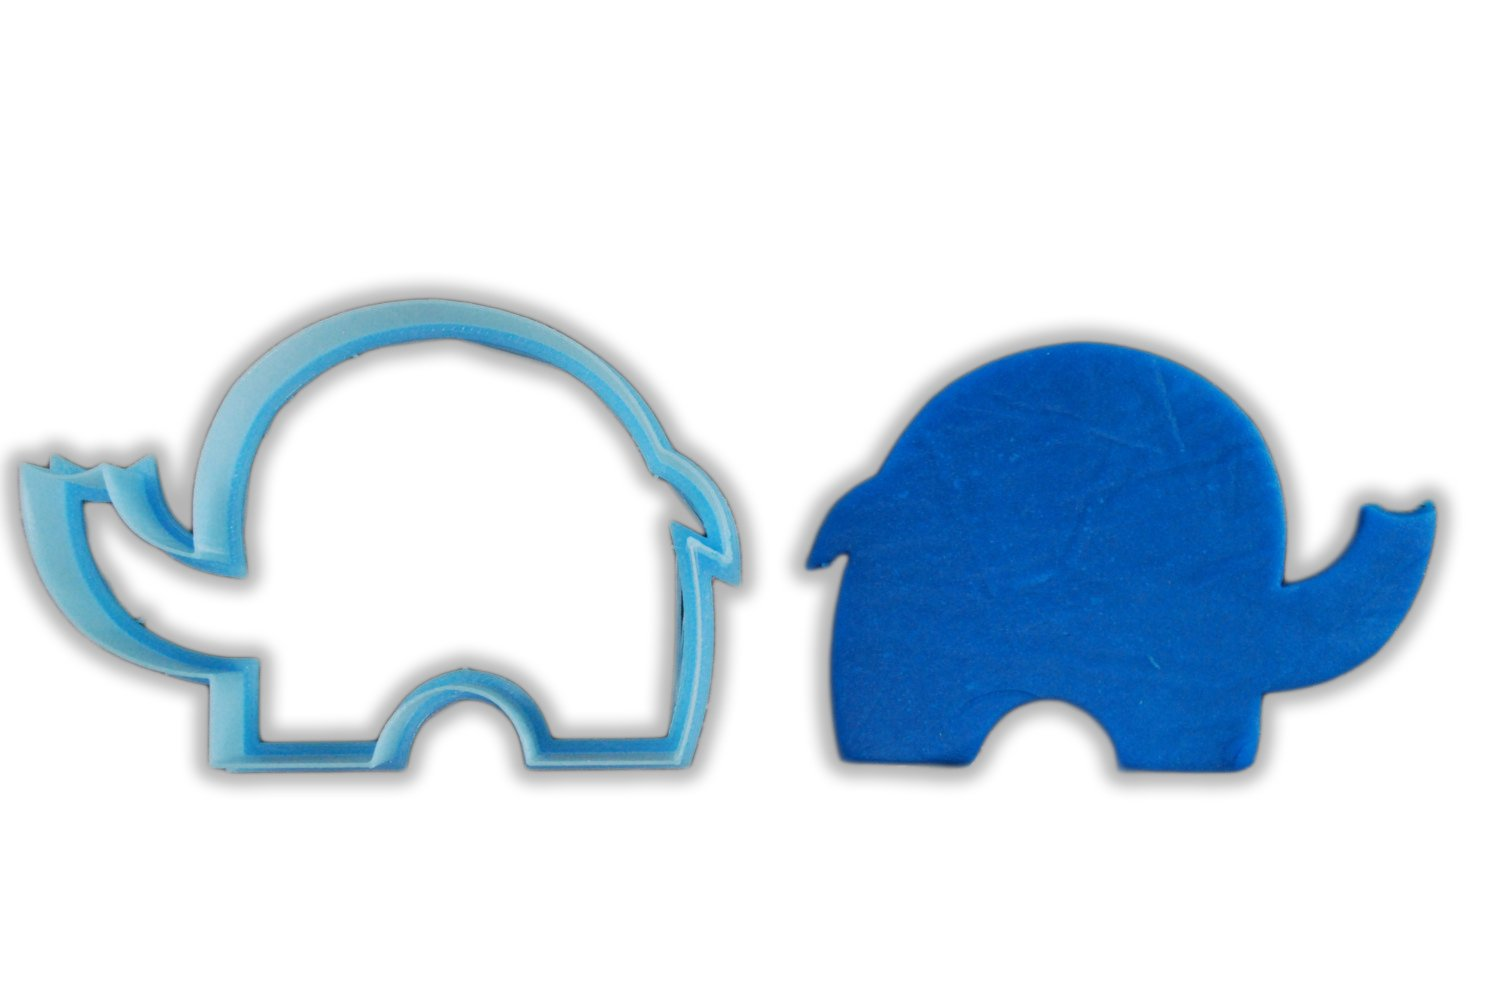 Tiny Elephant Animal Cookie Cutter - LARGE - 4 Inches